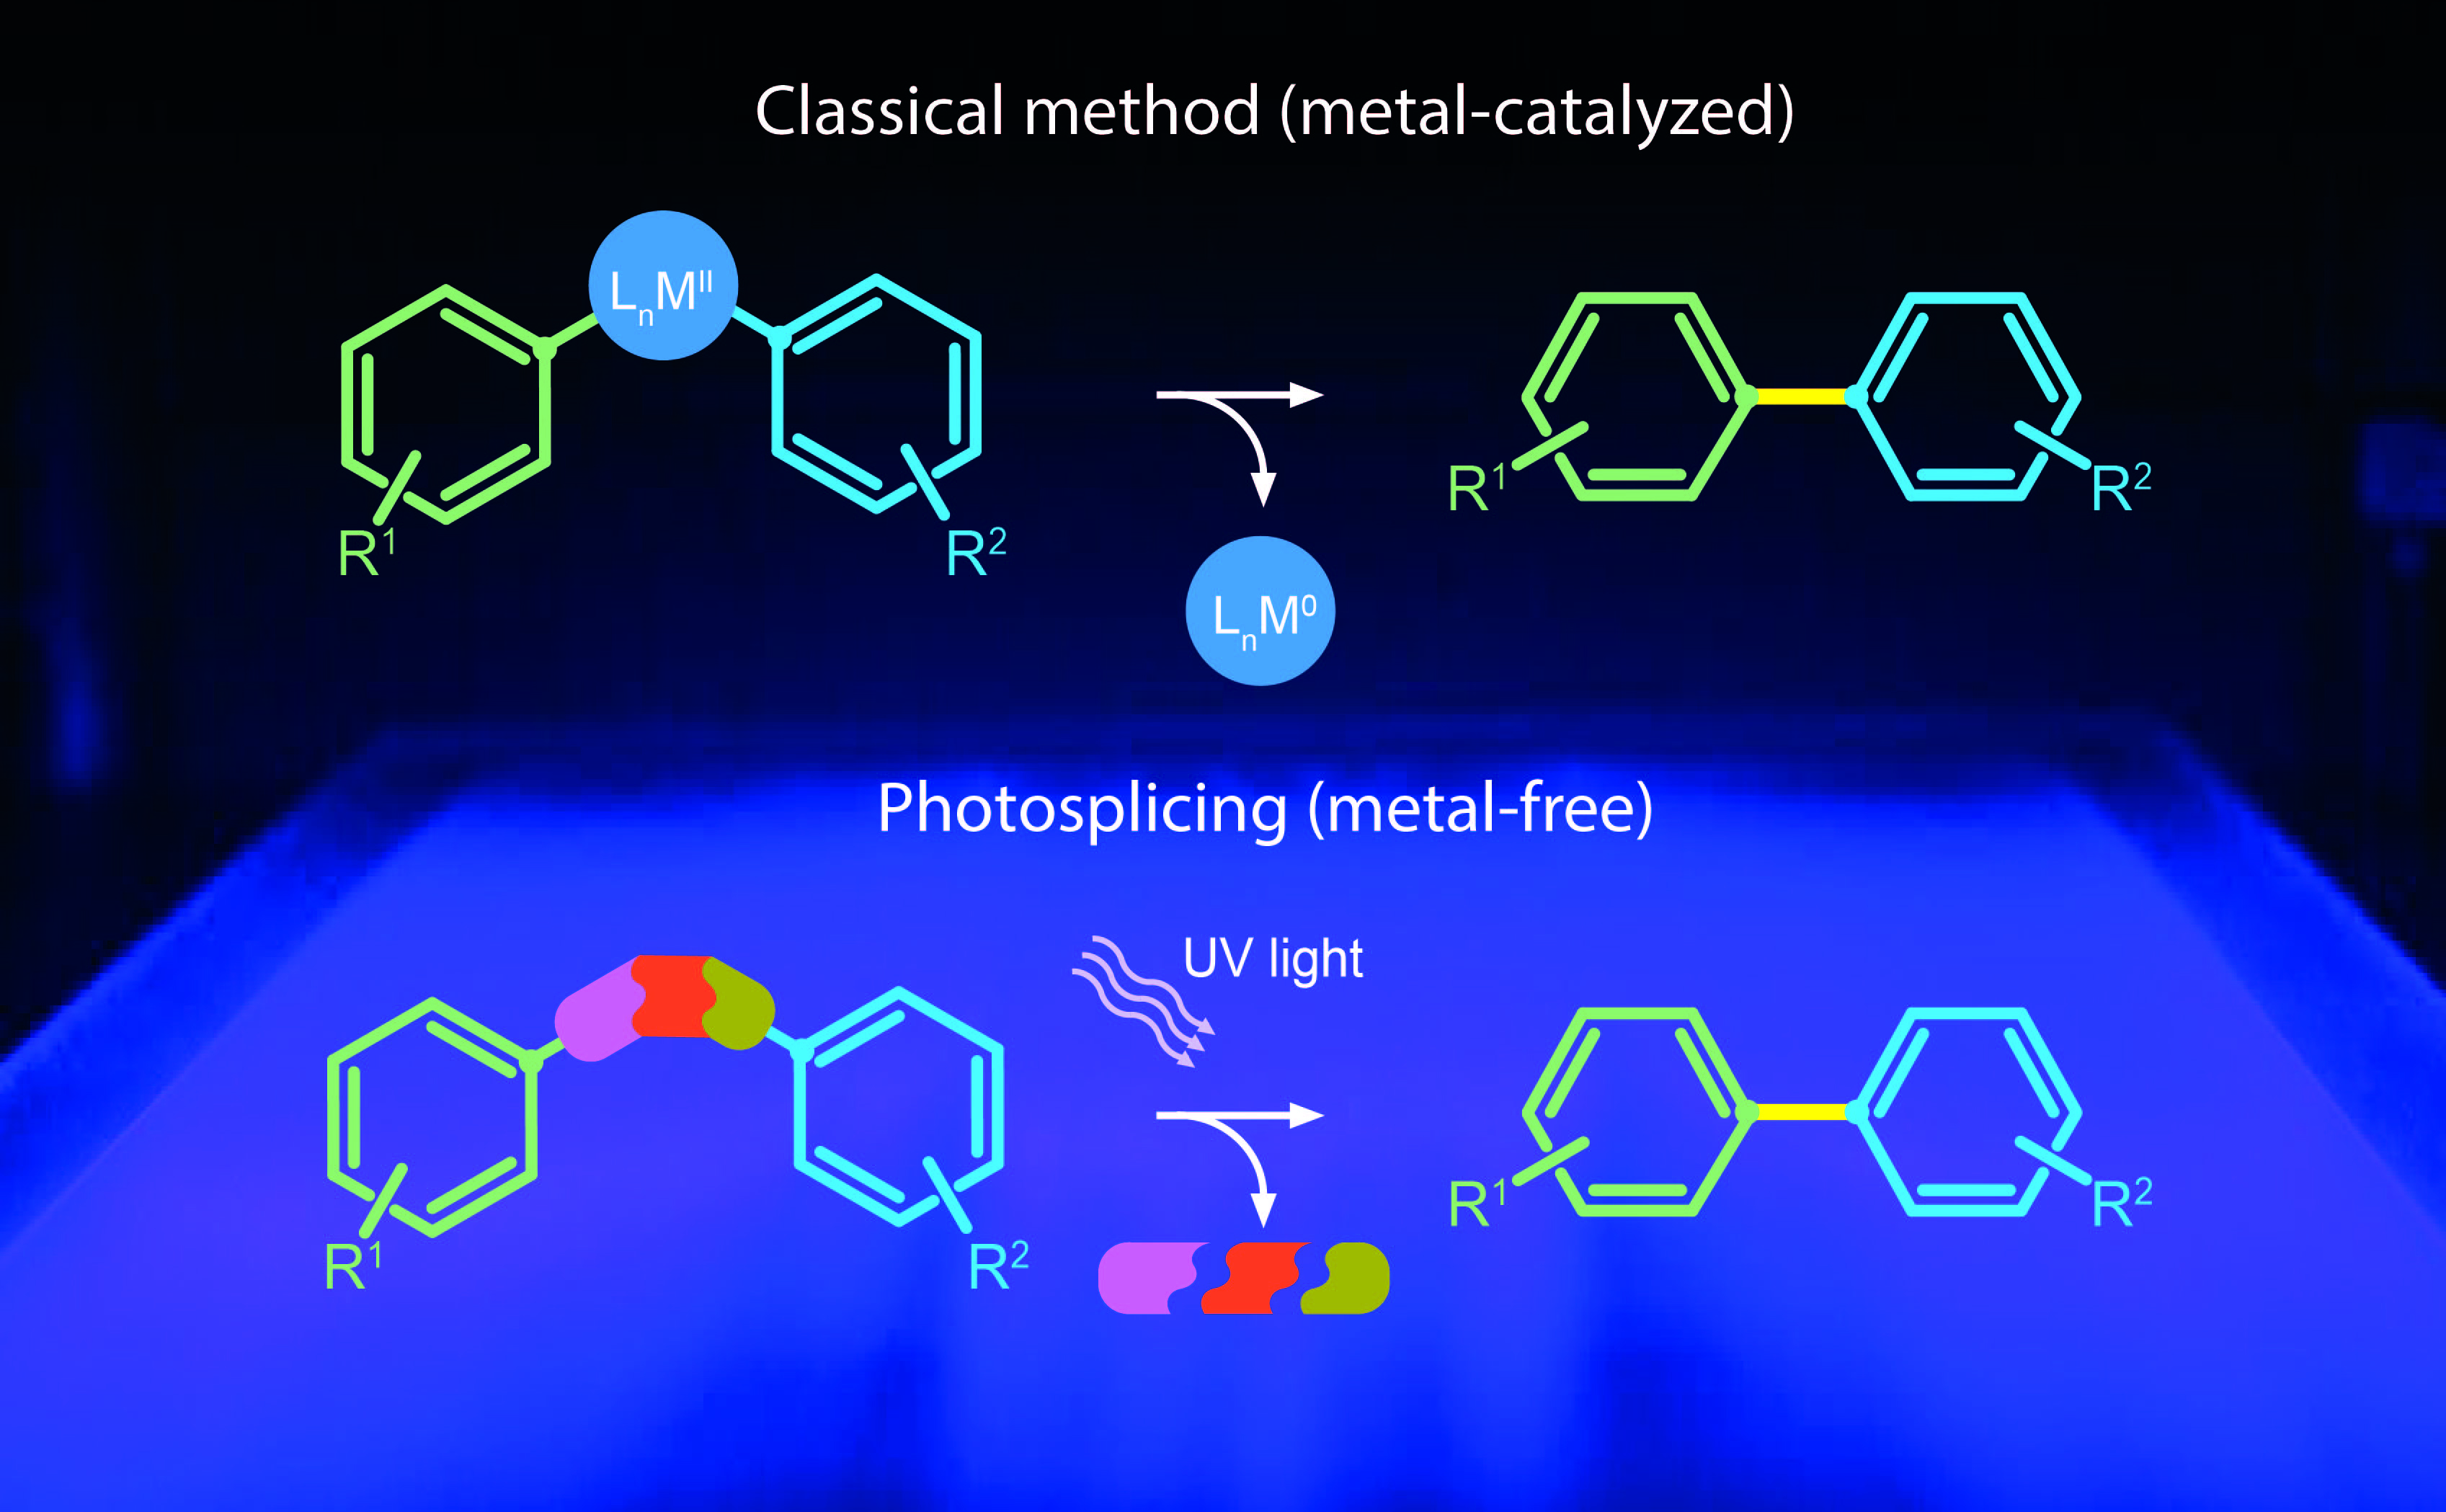 New photosplicing method could revolutionize processes in the pharmaceutical industry